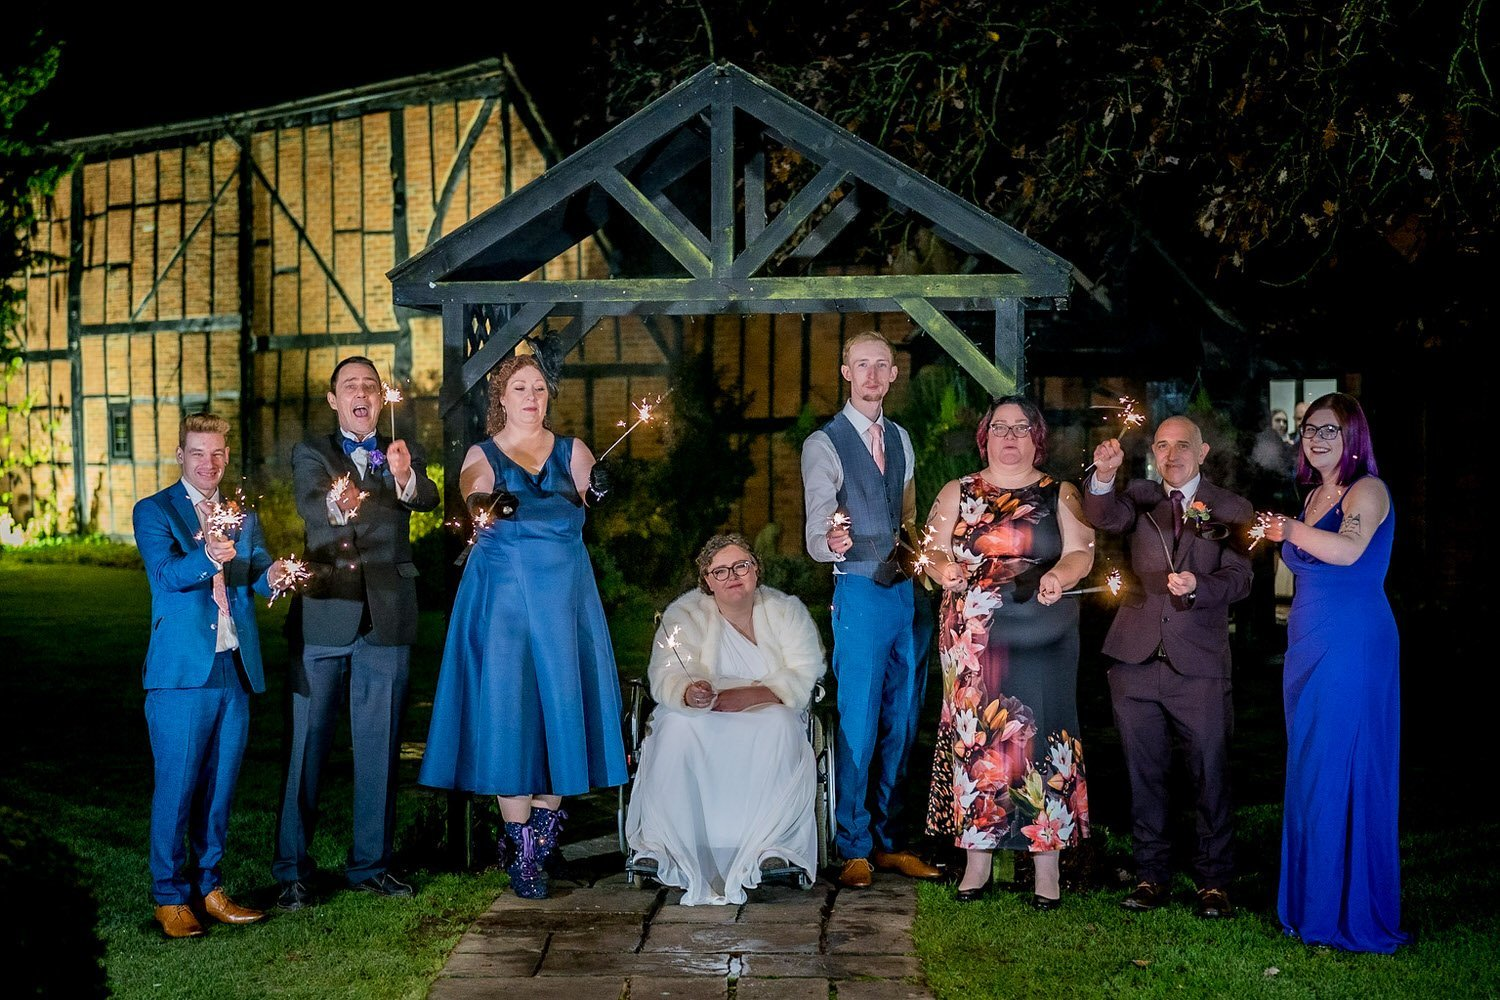 The Barns Hotel Bedford Wooten Weddings Photography Bridal party playing with sparklers outside the barn under the wooden archway